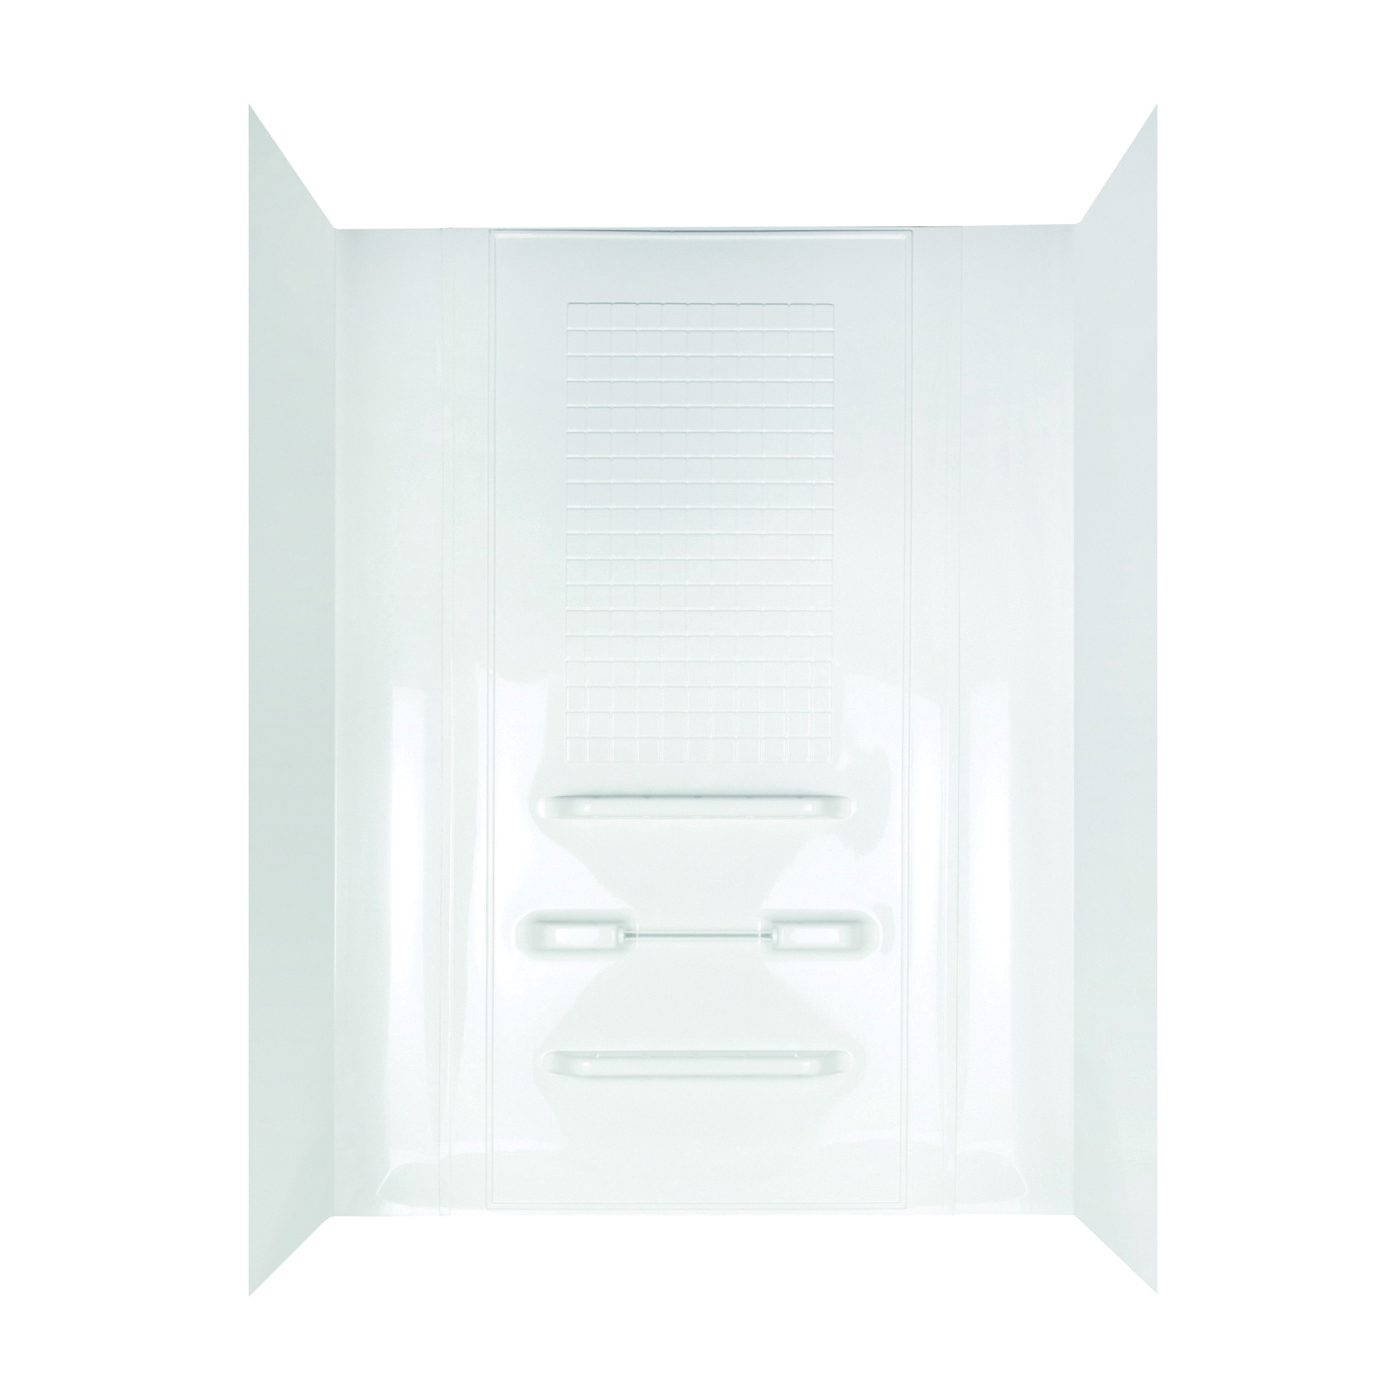 Picture of DELTA TW99440A Bathtub Wall Set, 78 in H, 53 in W, Polycomposite, White, Adhesive Installation, Tile Wall